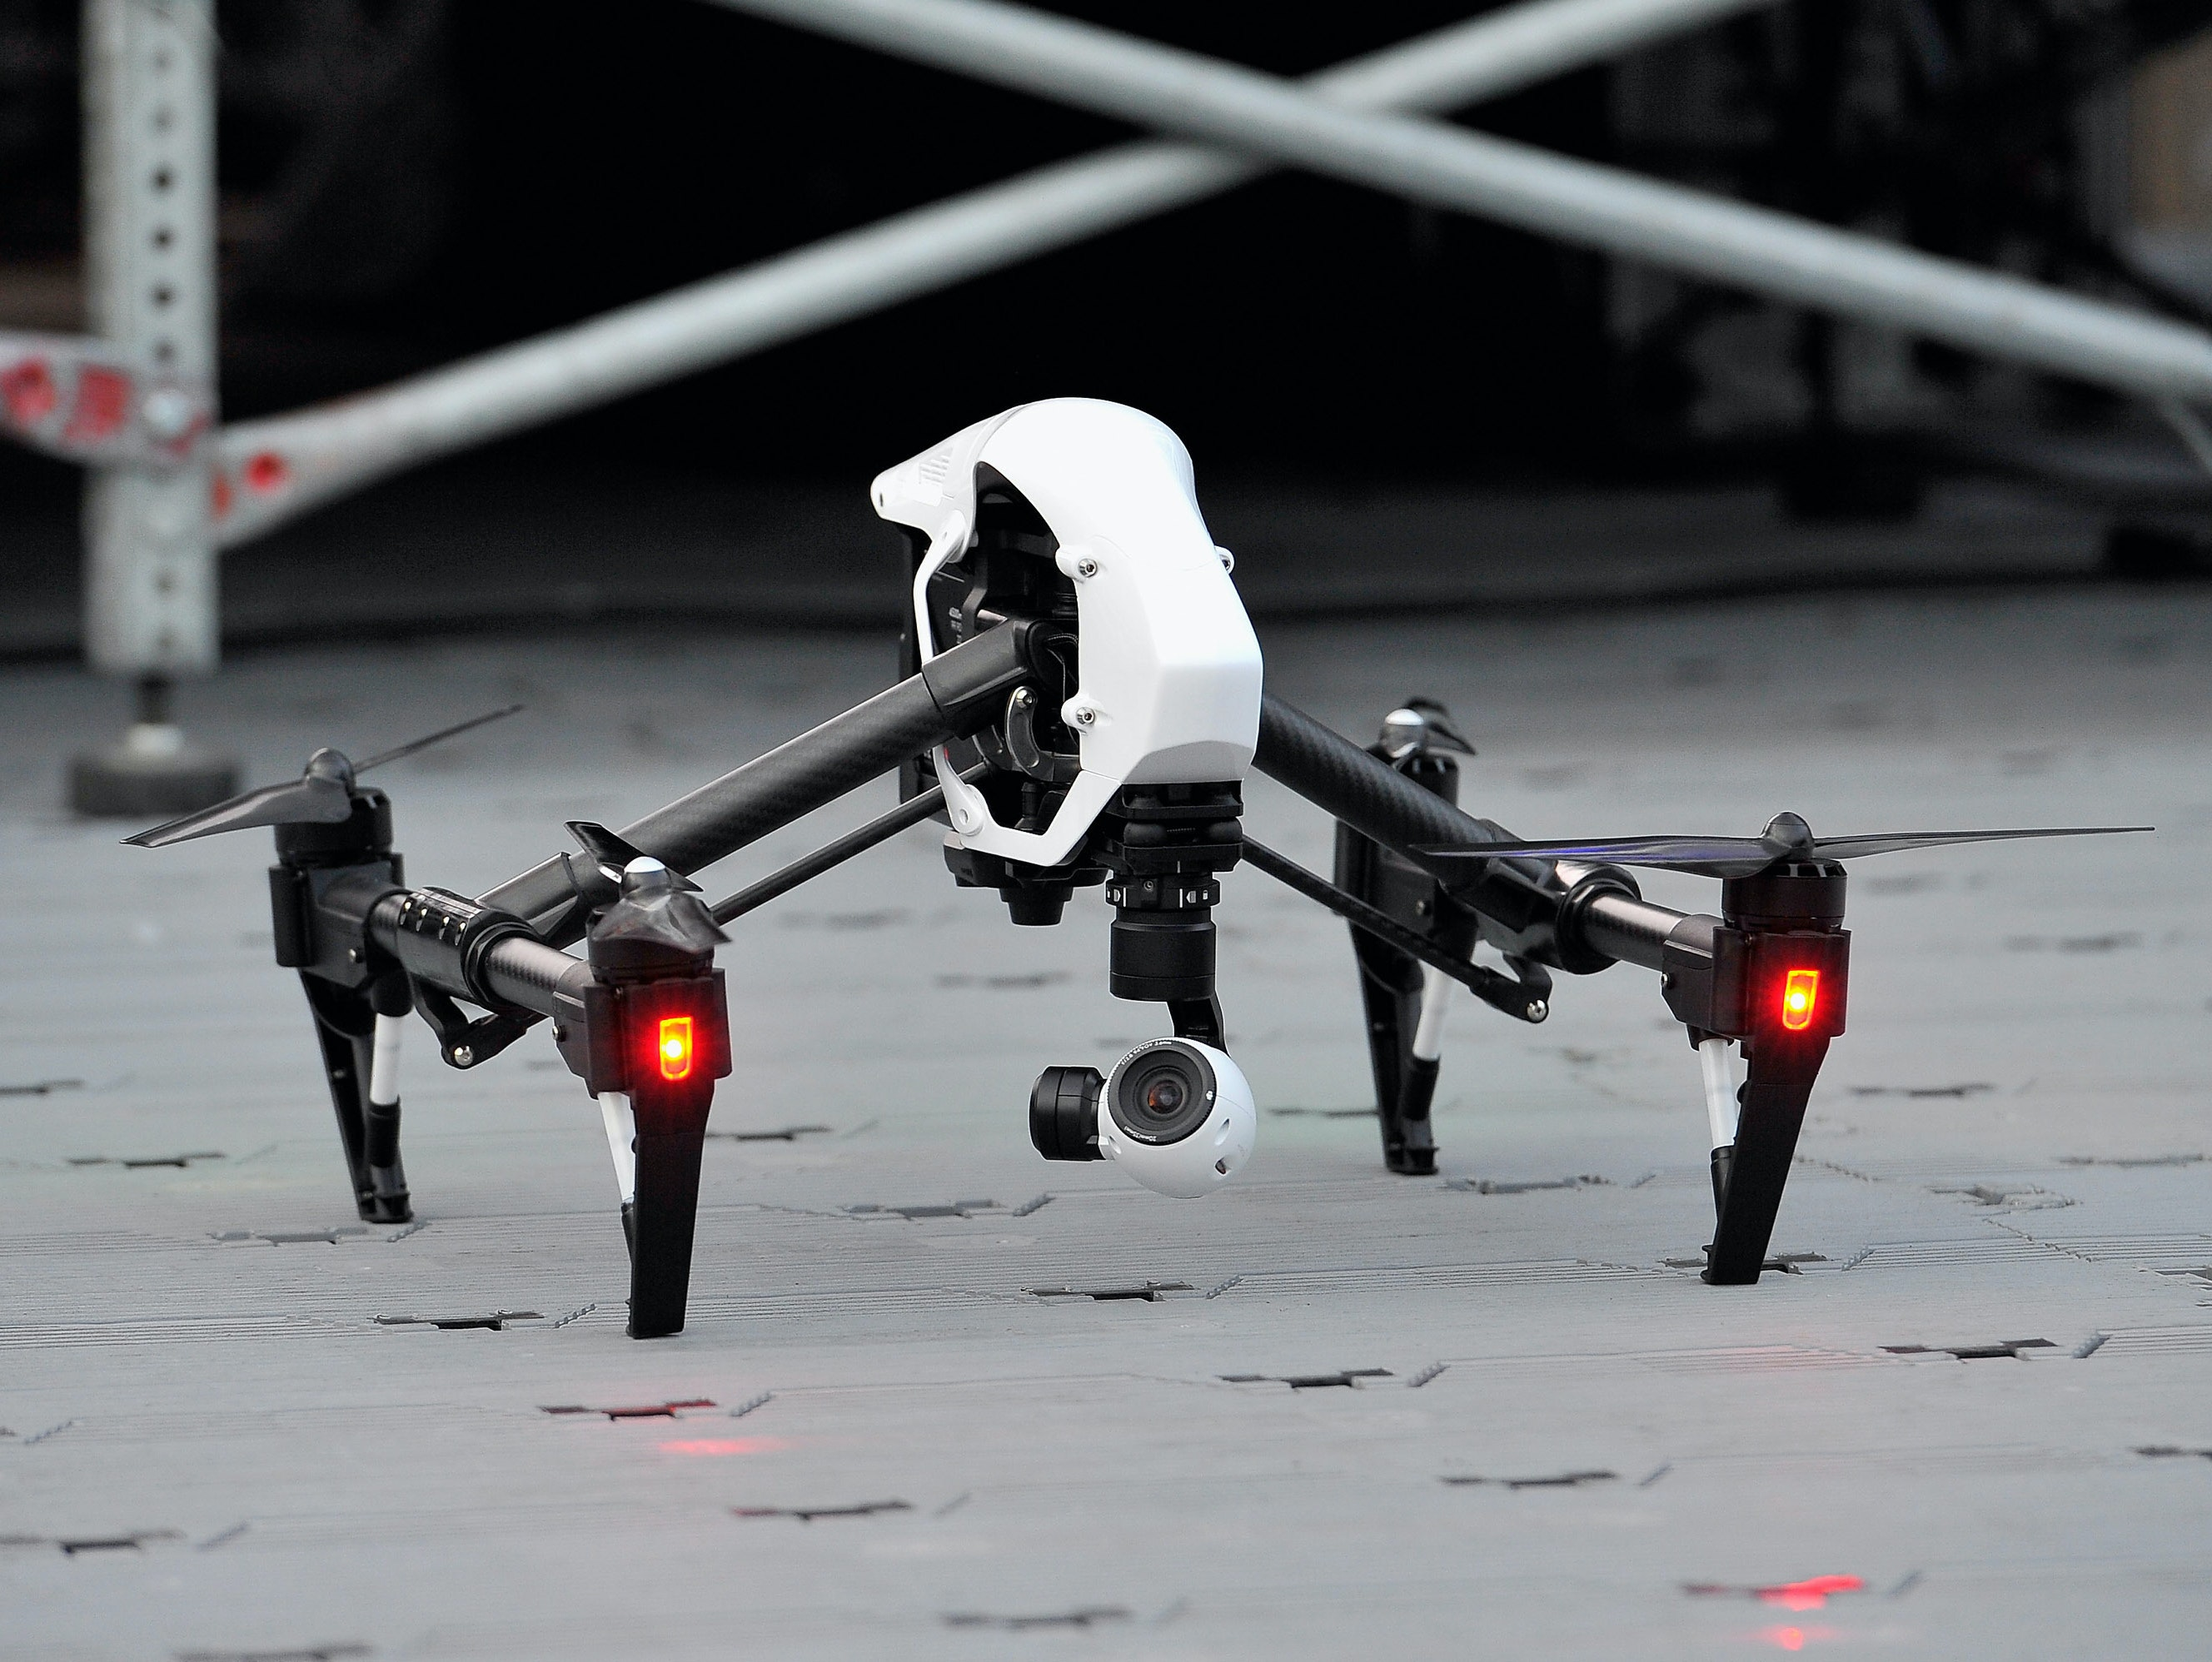 Police in Massachusetts Spent $18,000 on Drones to Study Car Crashes